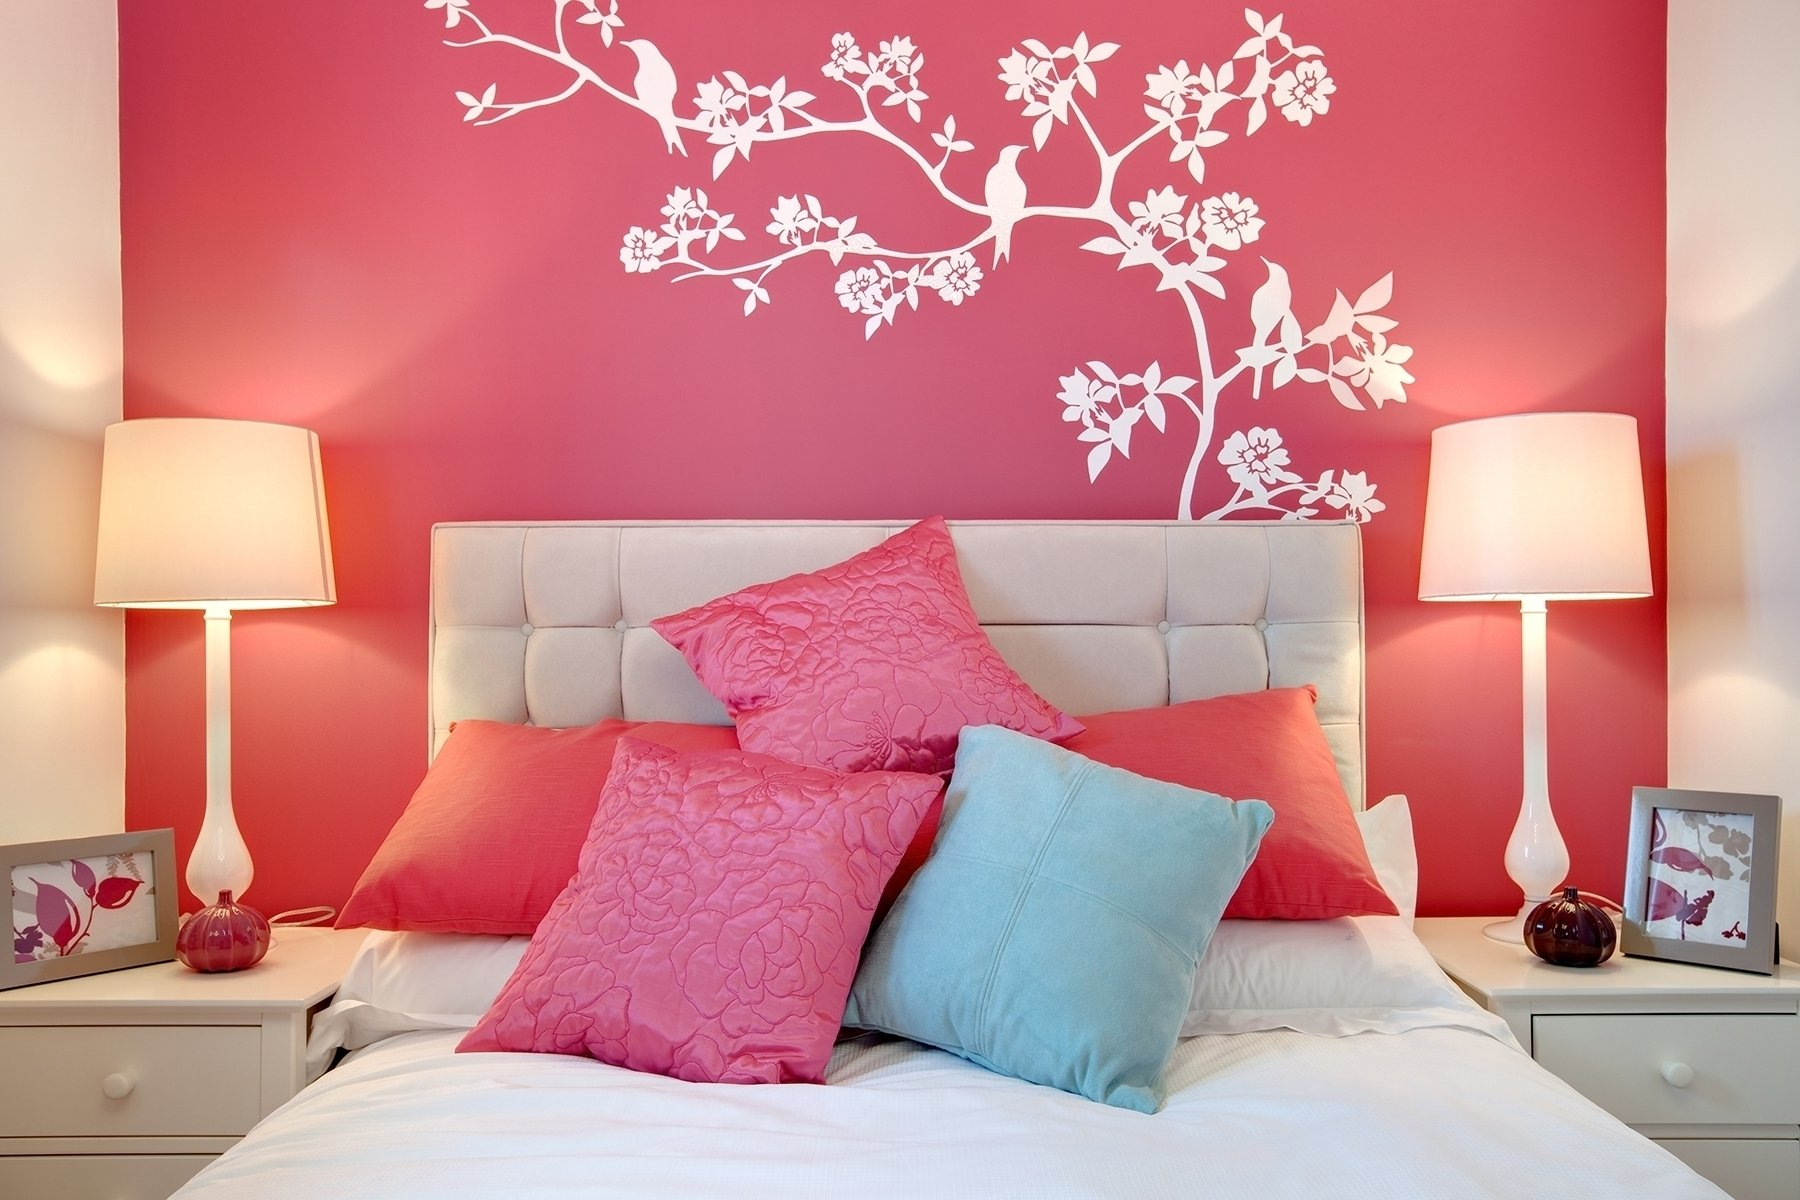 10 Stunning Wall Painting Ideas For Bedroom simple bedroom wall painting ideas download wall paint ideas for 1 2020